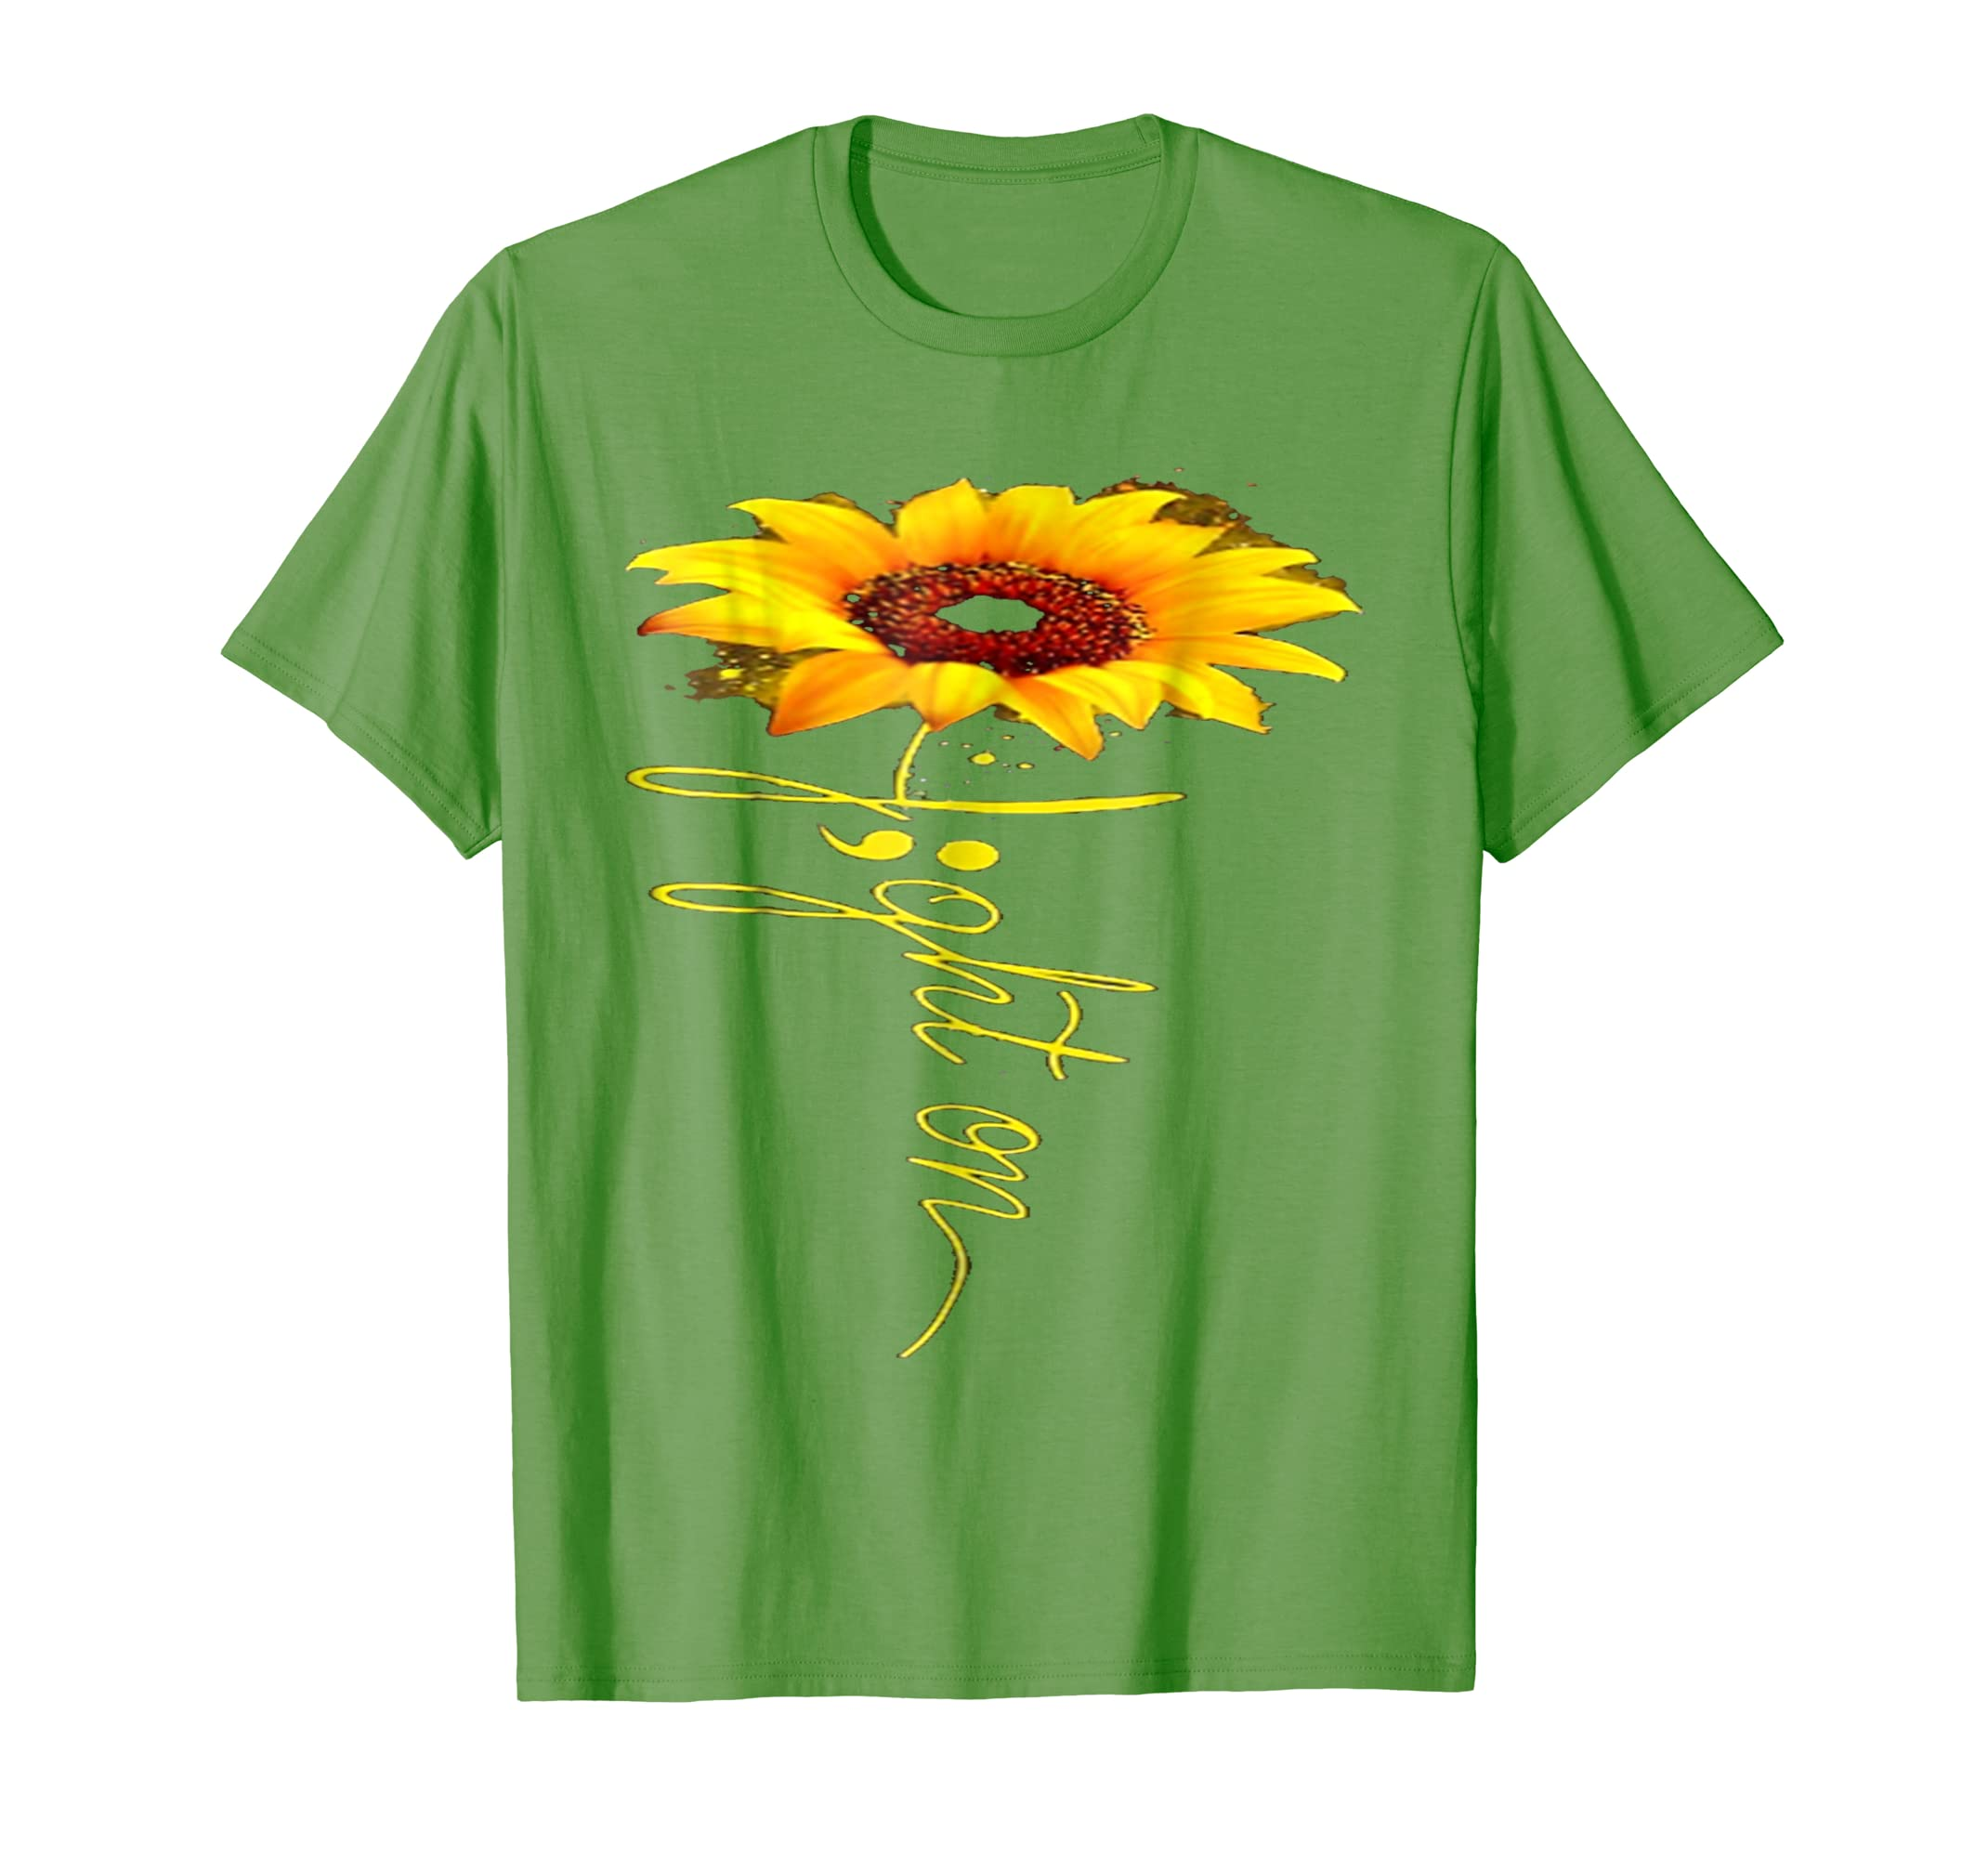 Fight on sunflower mental health T shirt-azvn